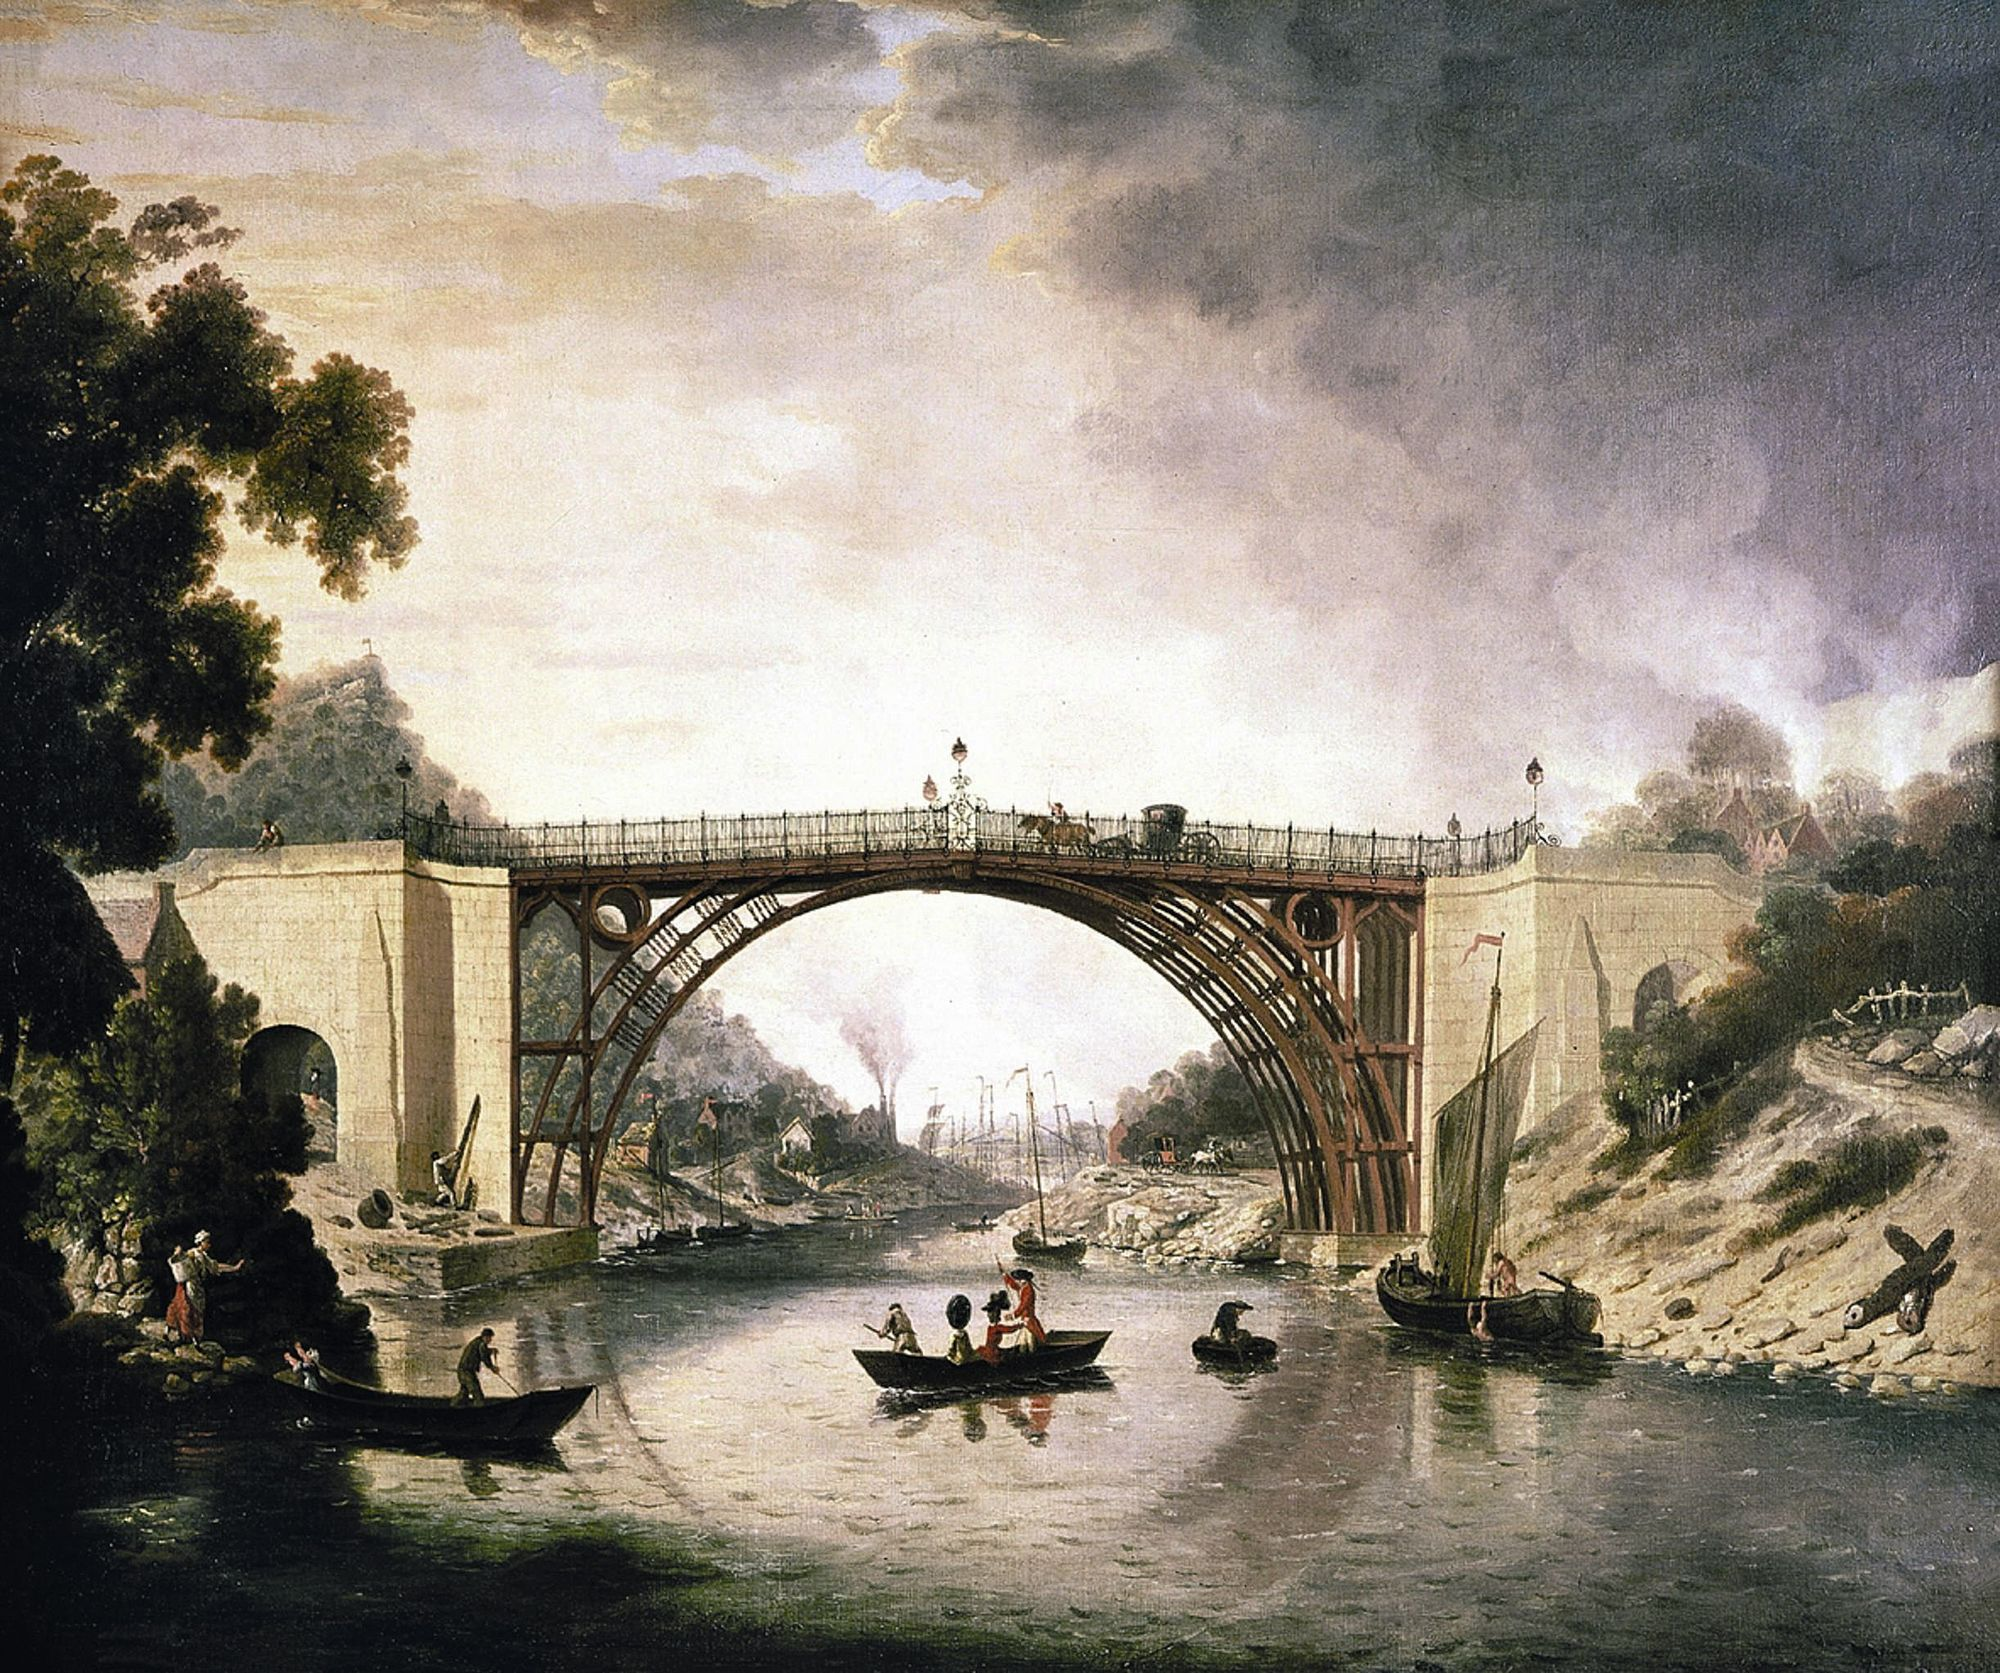 A View Of The Iron Bridge, William Williams, 1777.